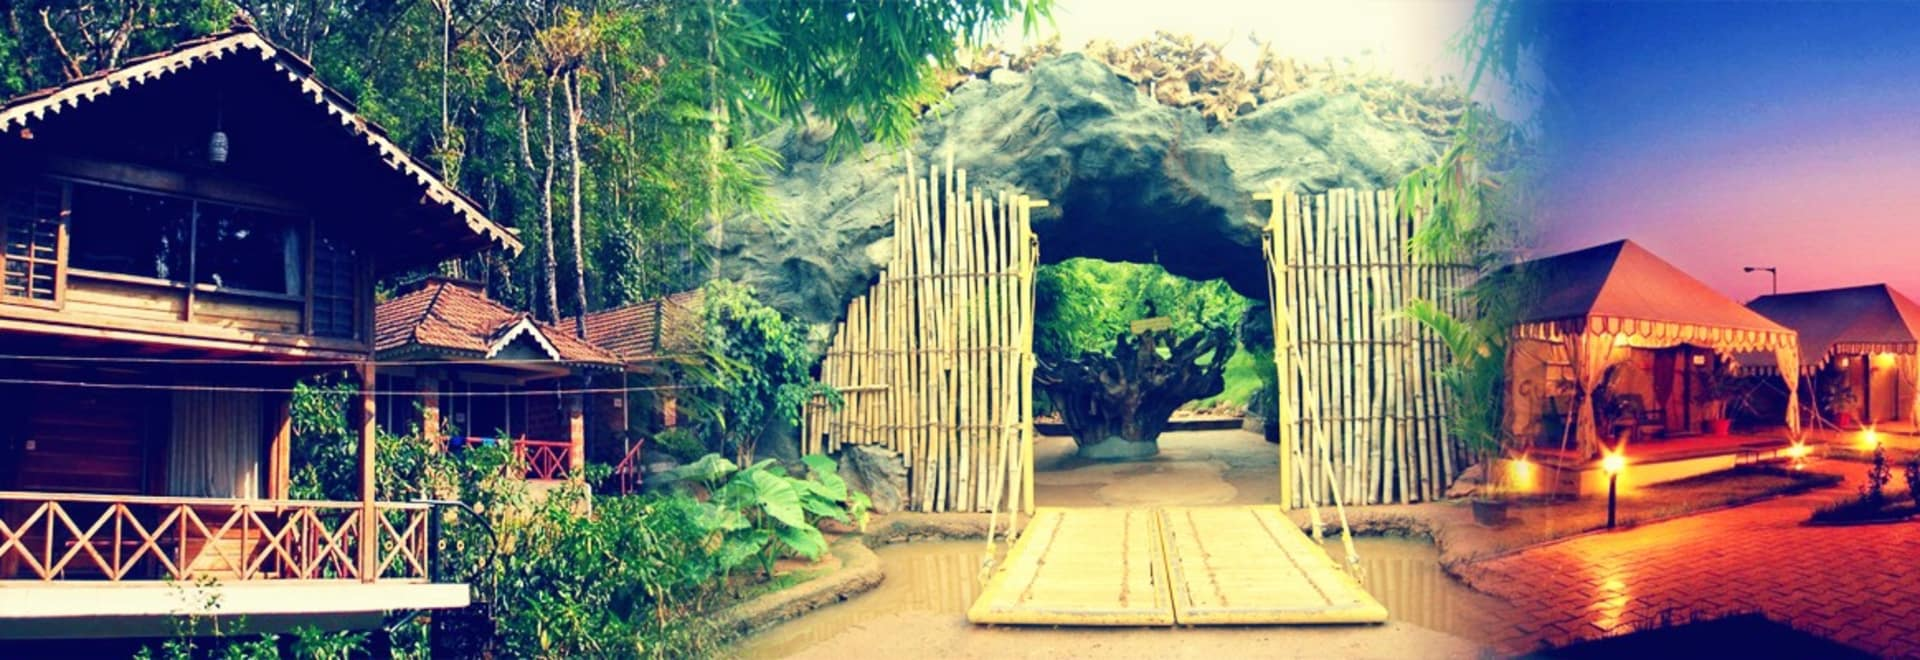 30 Best Resorts Around Bangalore For A Day Outing Do Not Visit Before Reading This